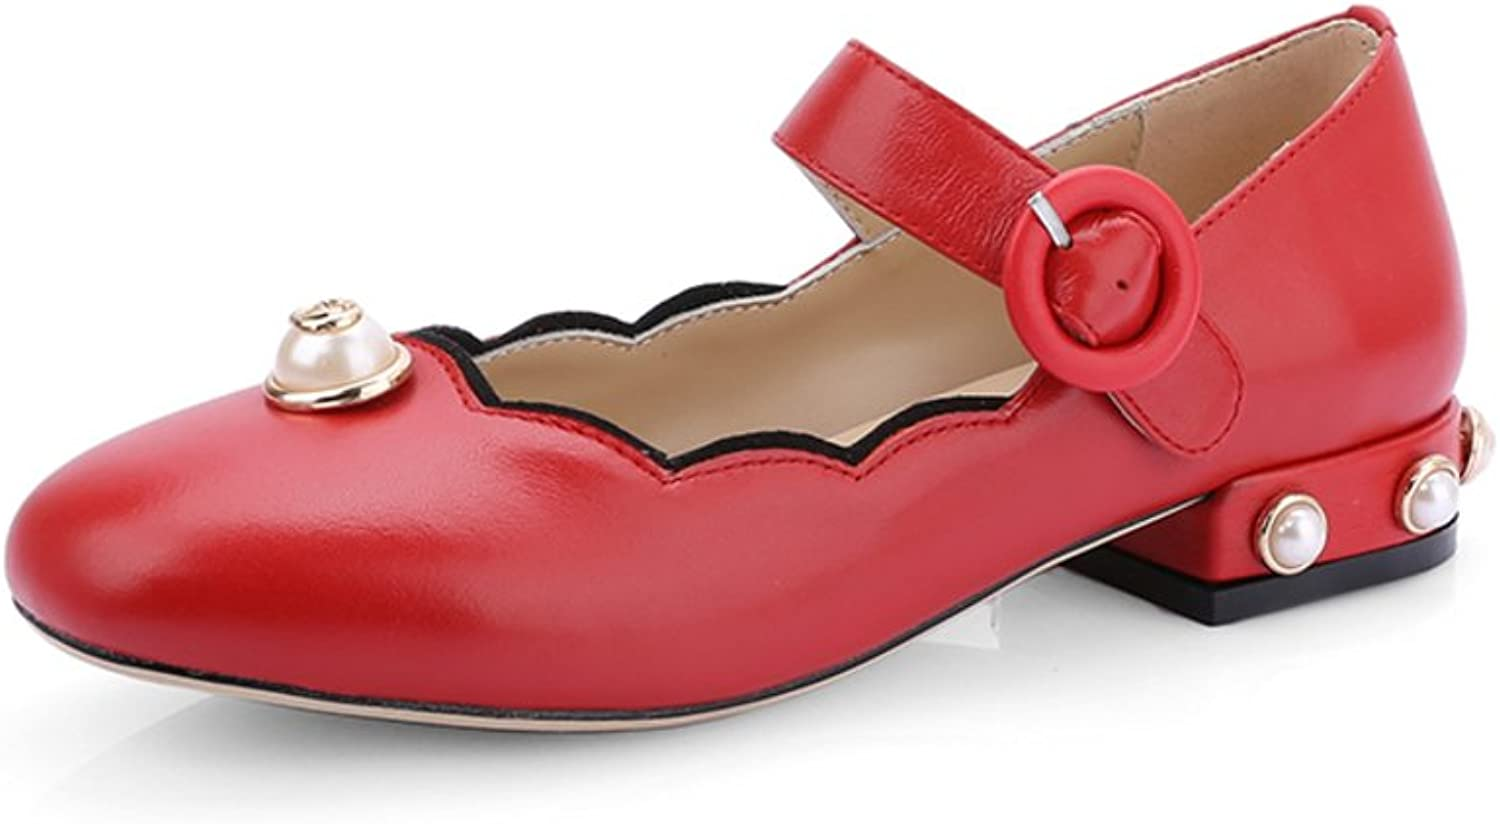 Huhuj Full Cow Pima Lizhen shoes Trend Pearl Low-Heeled Party shoes with Leather with Word